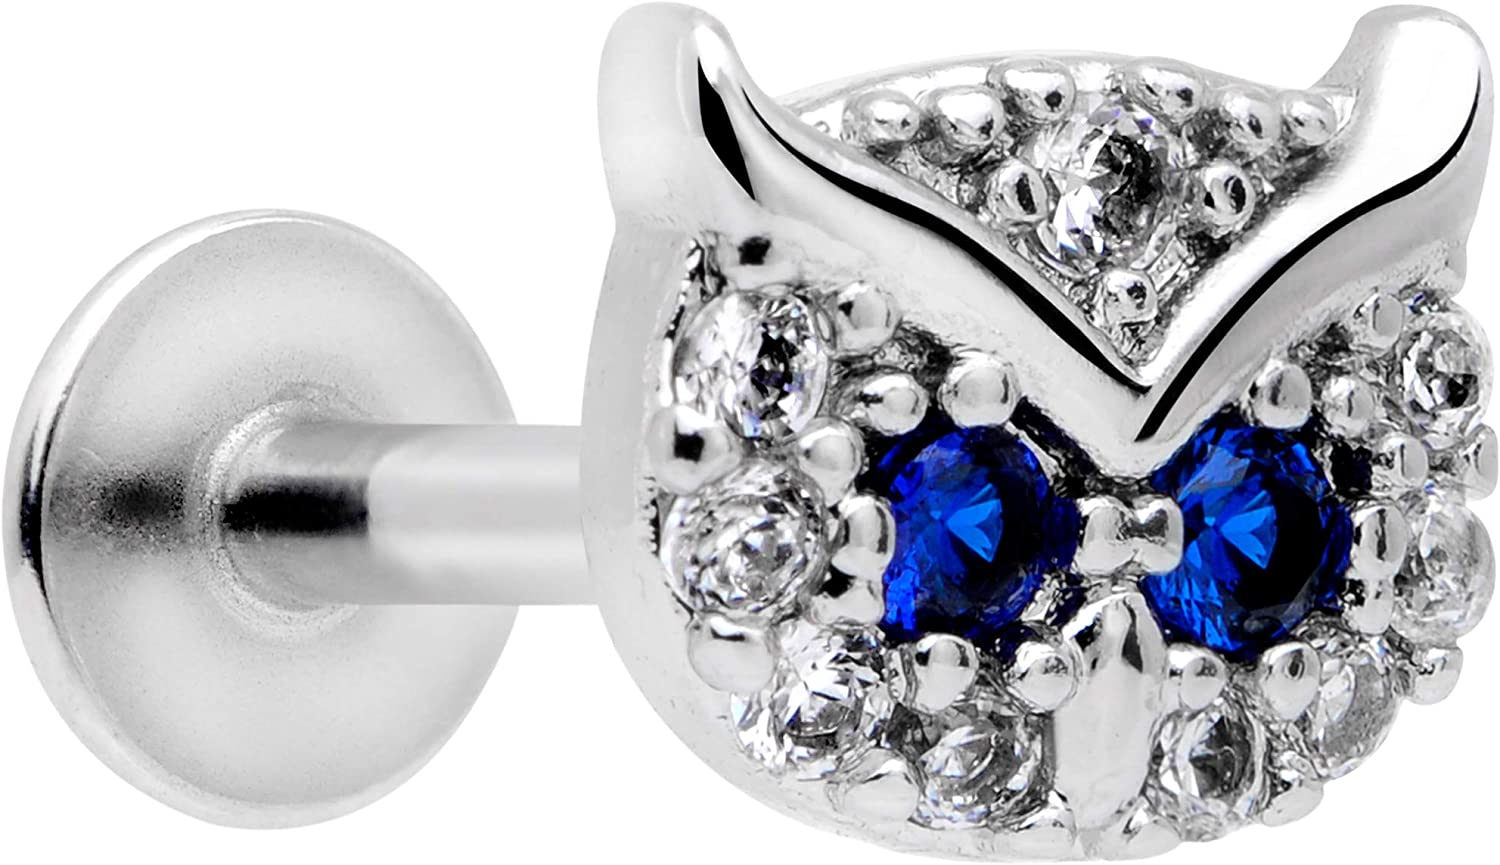 Body Candy Womens 16G Steel Clear Blue Accent Wise Owl Labret Monroe Lip Ring Tragus 8mm Cartilage Stud